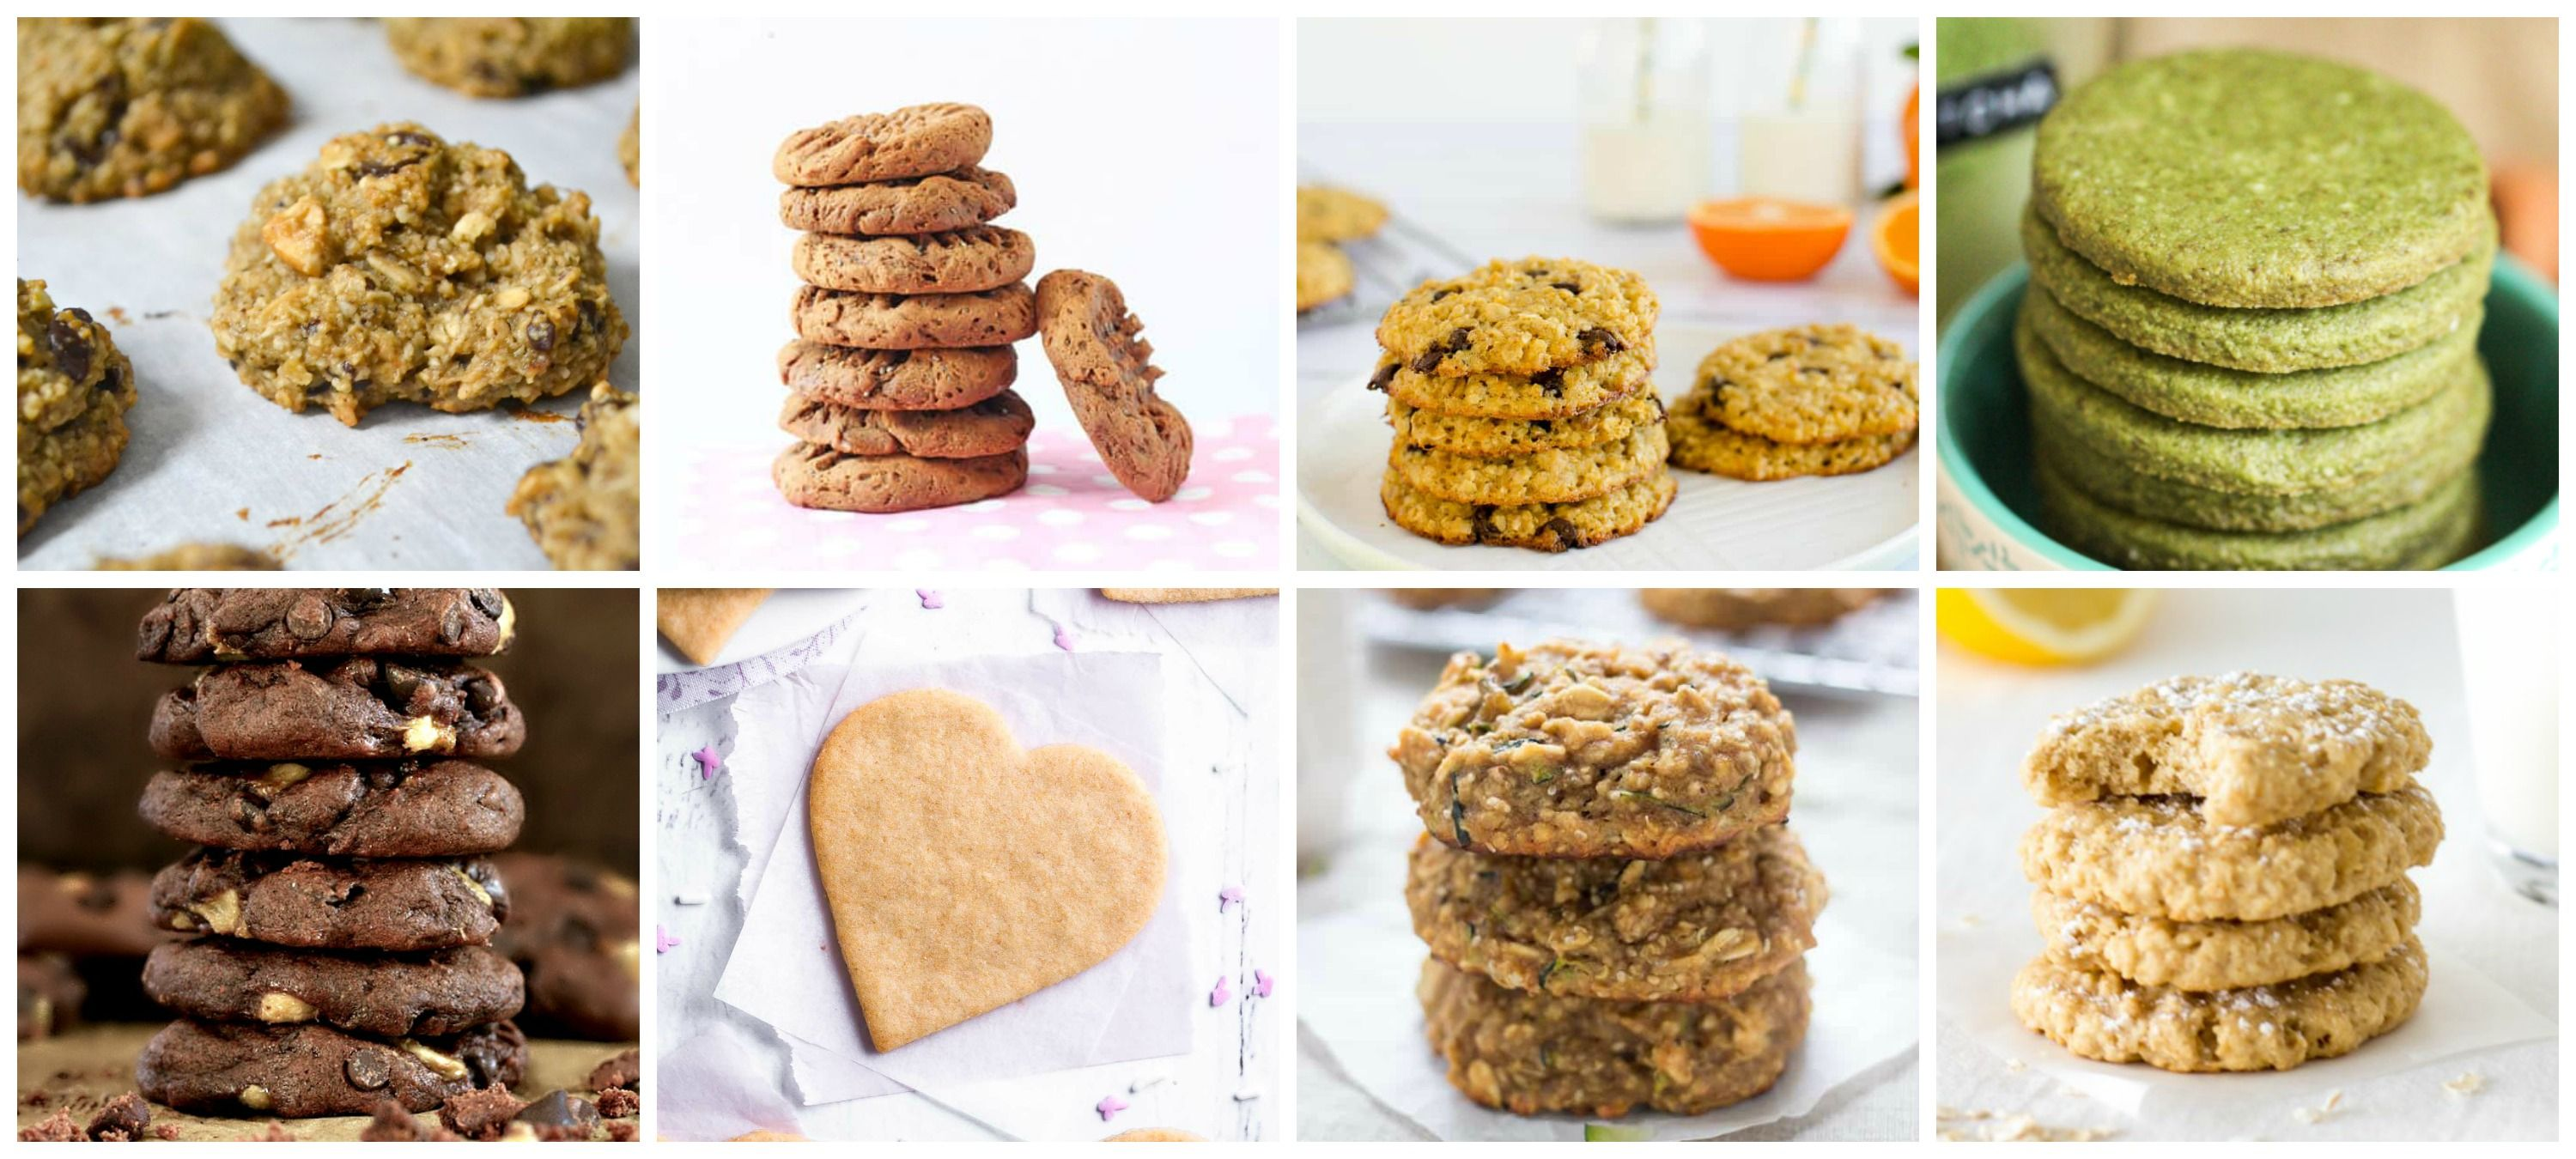 8 images of healthy cookies, from chocolately banana cookies to green matcha cookies.